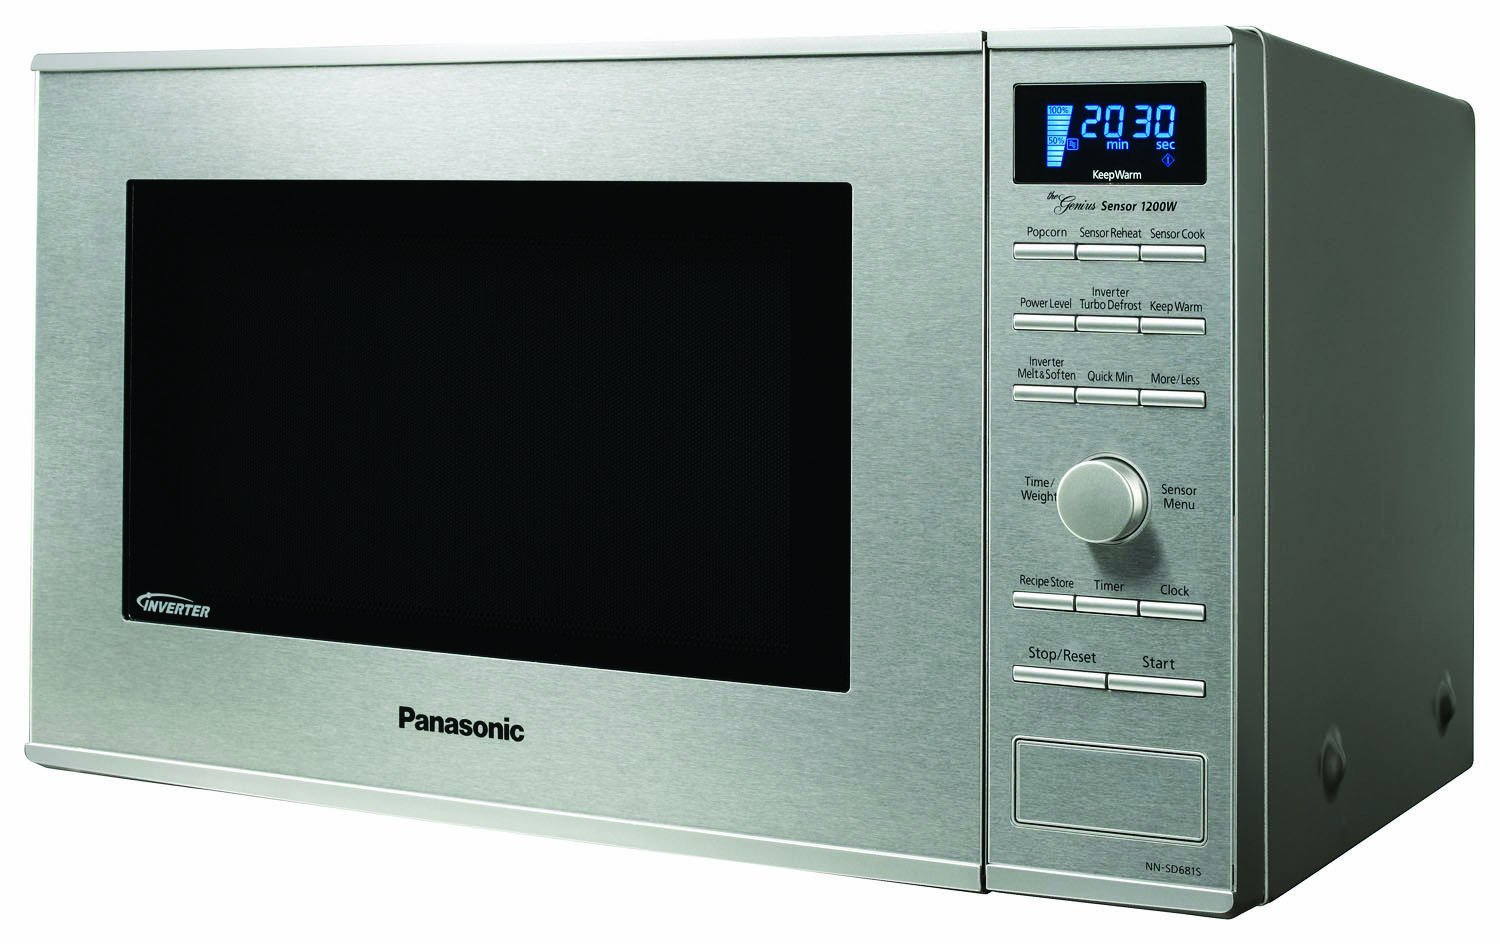 Best Microwave Ovens ~ What s pippin shed fam howard ain t on washed up celeb